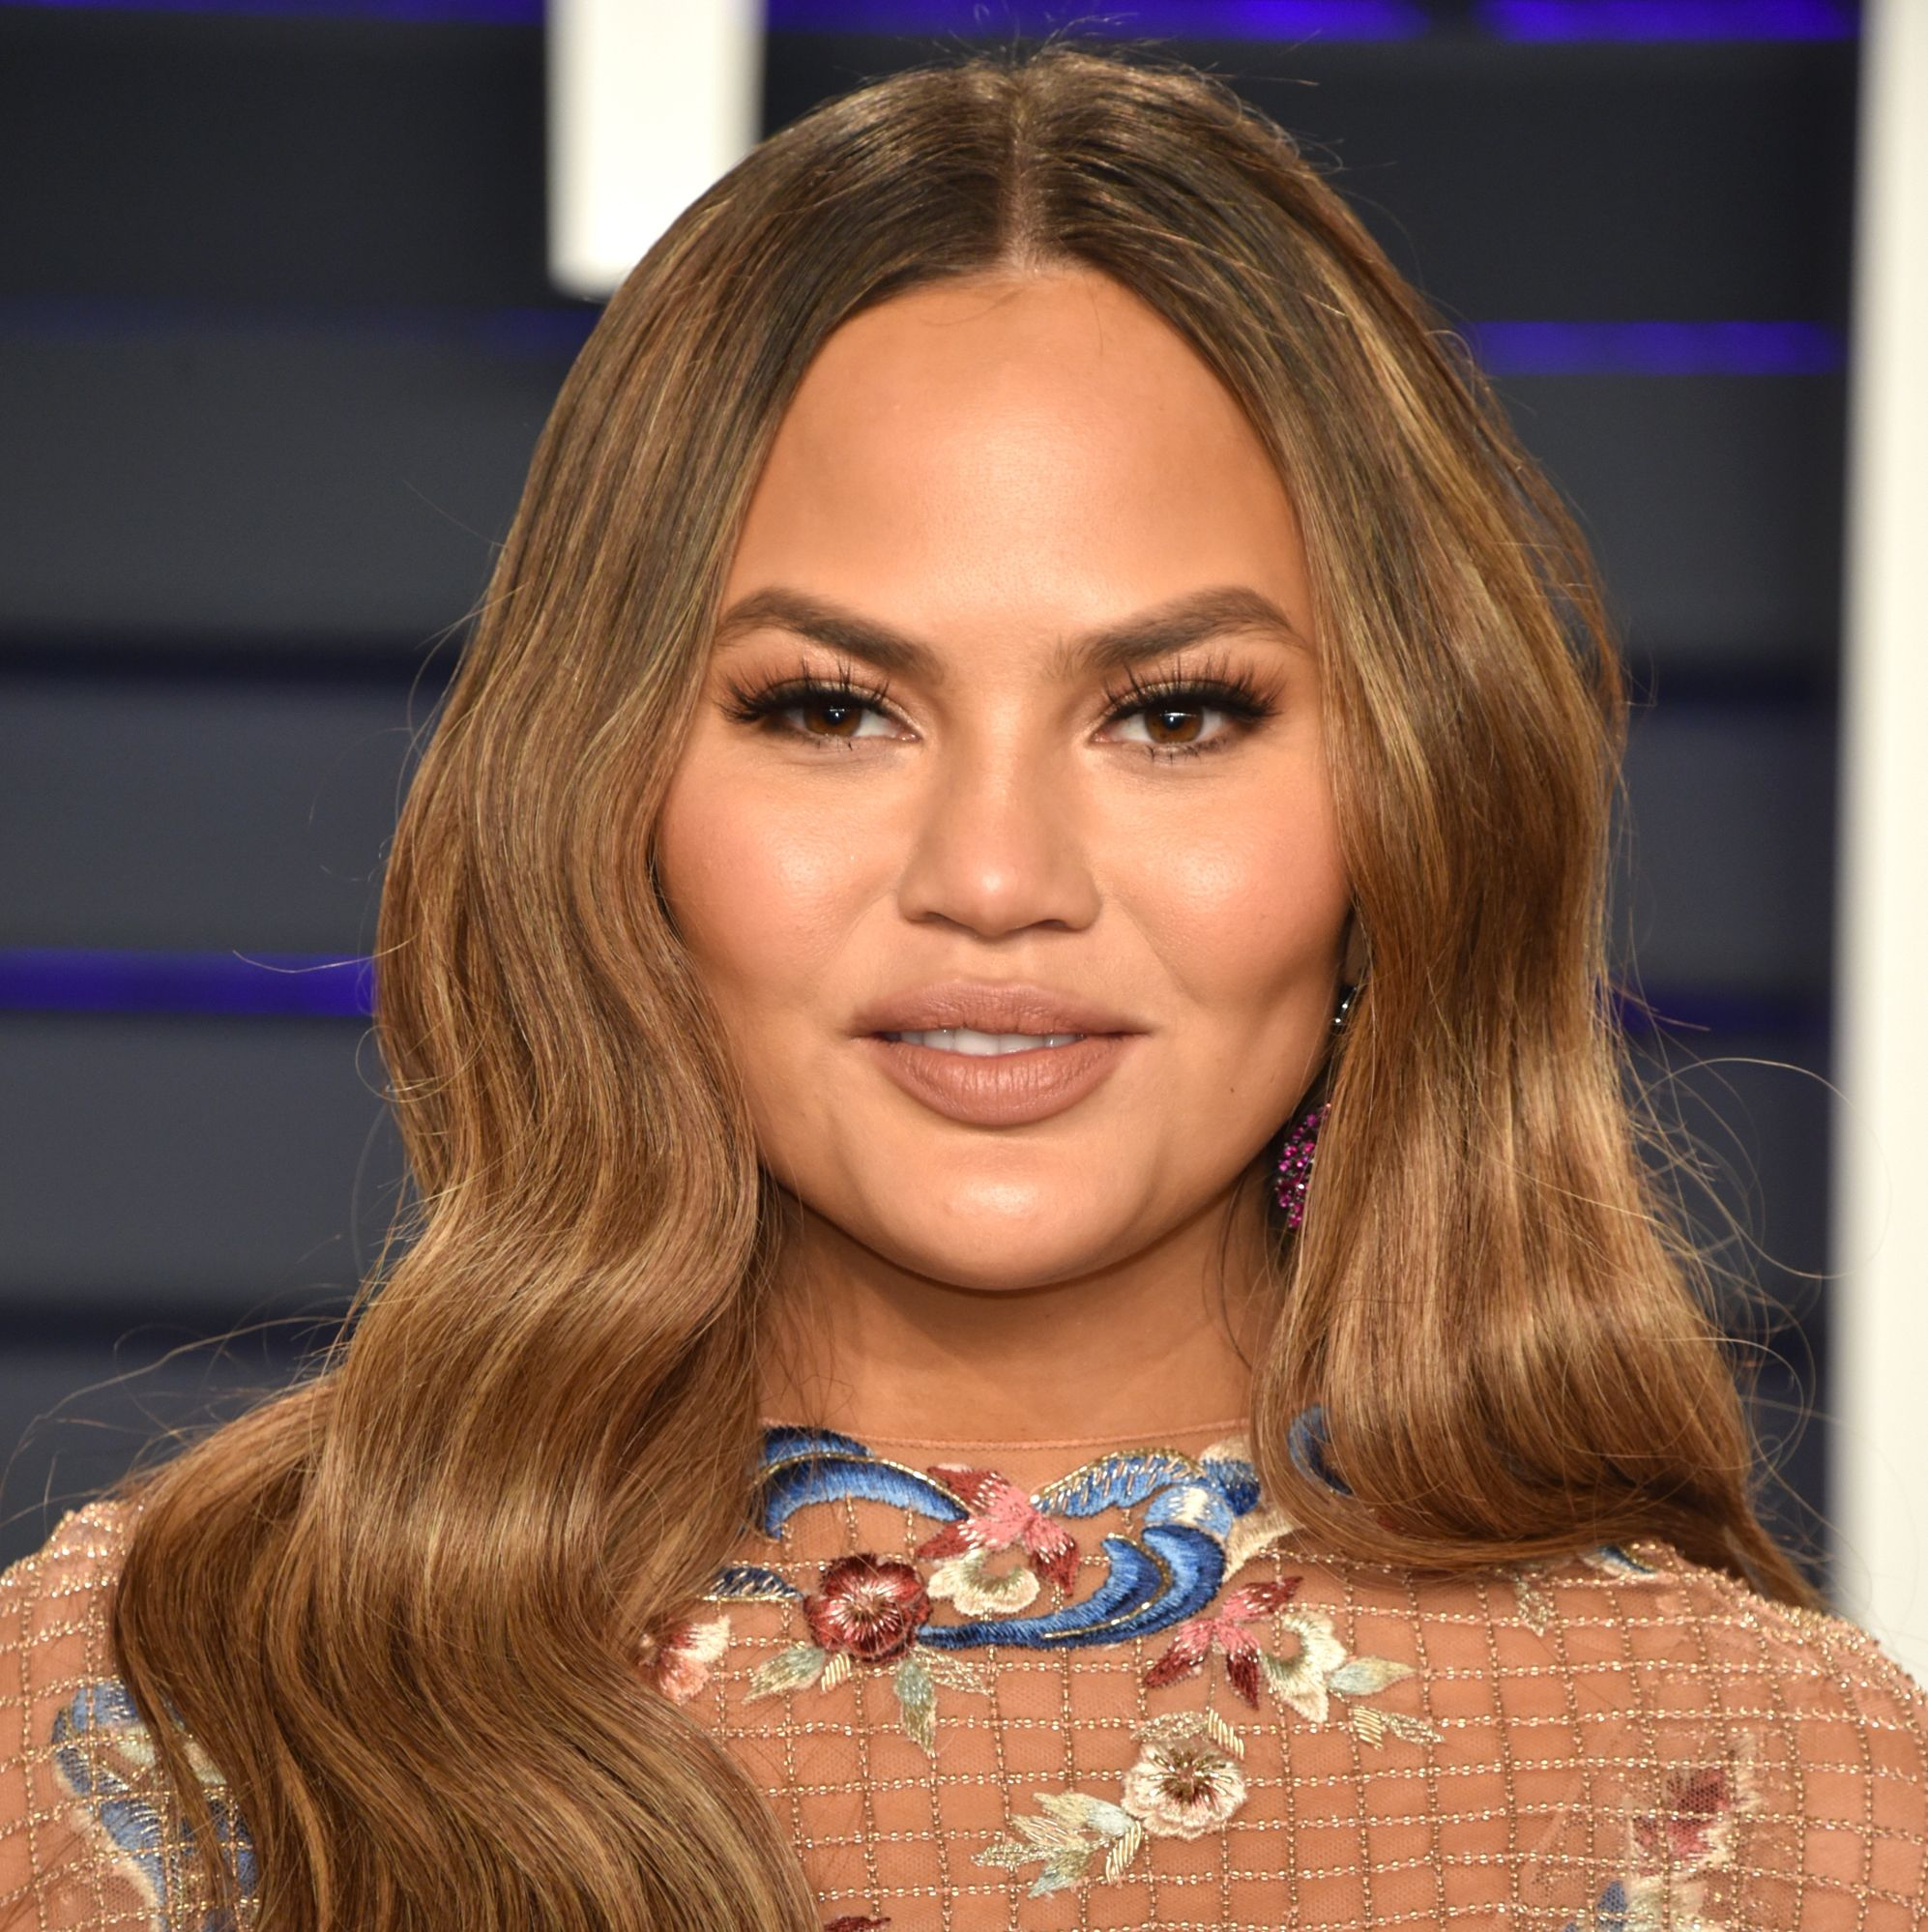 Chrissy Teigen Just Responded To A Troll About Her 'Unnatural' Cheeks In The Best Way